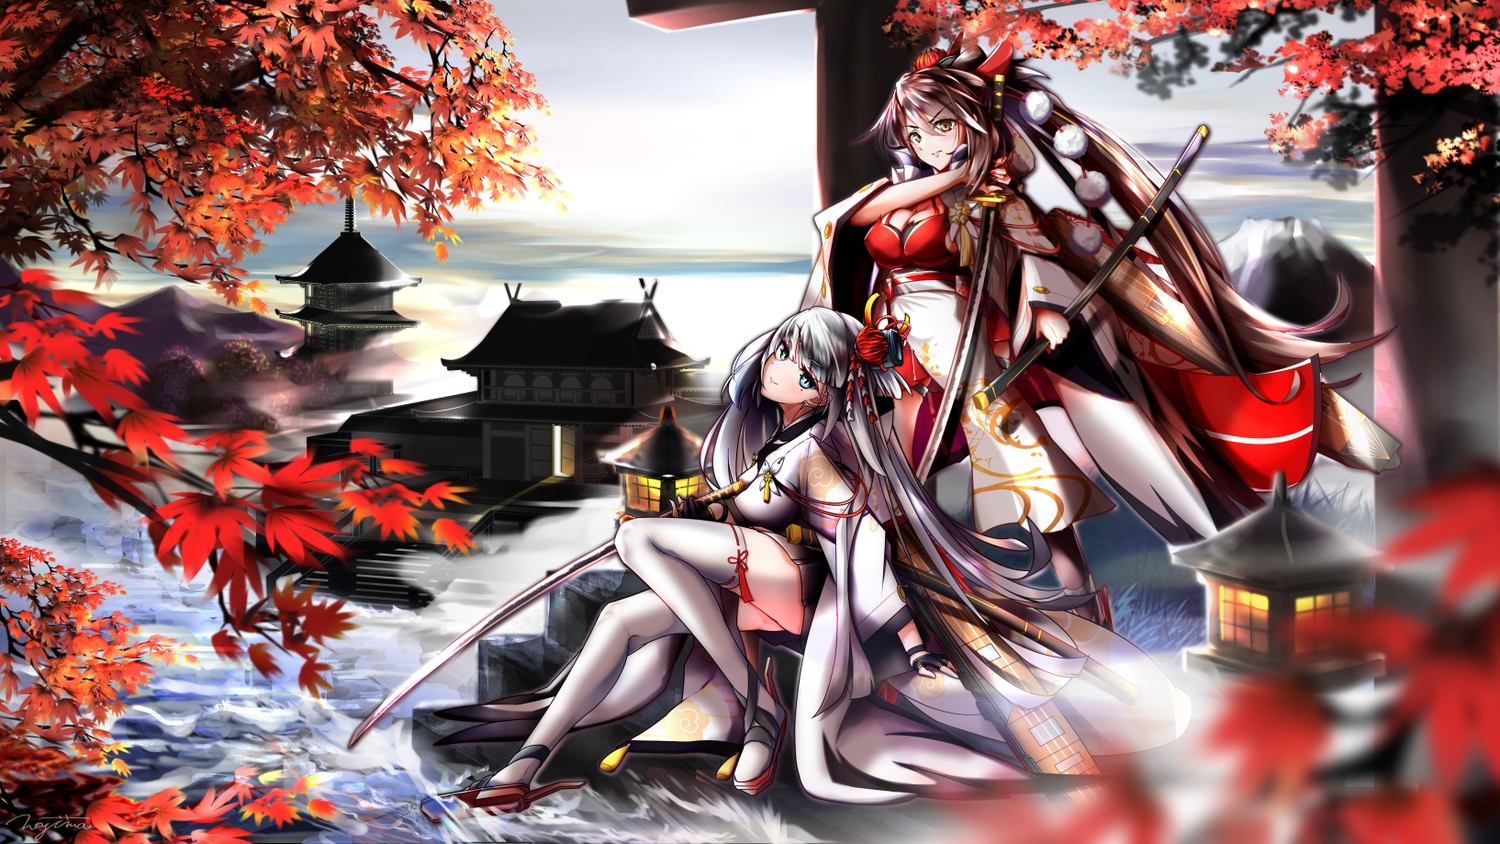 2girls anthropomorphism autumn azur_lane blue_eyes breasts brown_hair building cleavage clouds gray_hair japanese_clothes katana kimono leaves long_hair ponytail shoukaku_(azur_lane) sky sword tagme_(artist) thighhighs water weapon yellow_eyes zuikaku_(azur_lane)